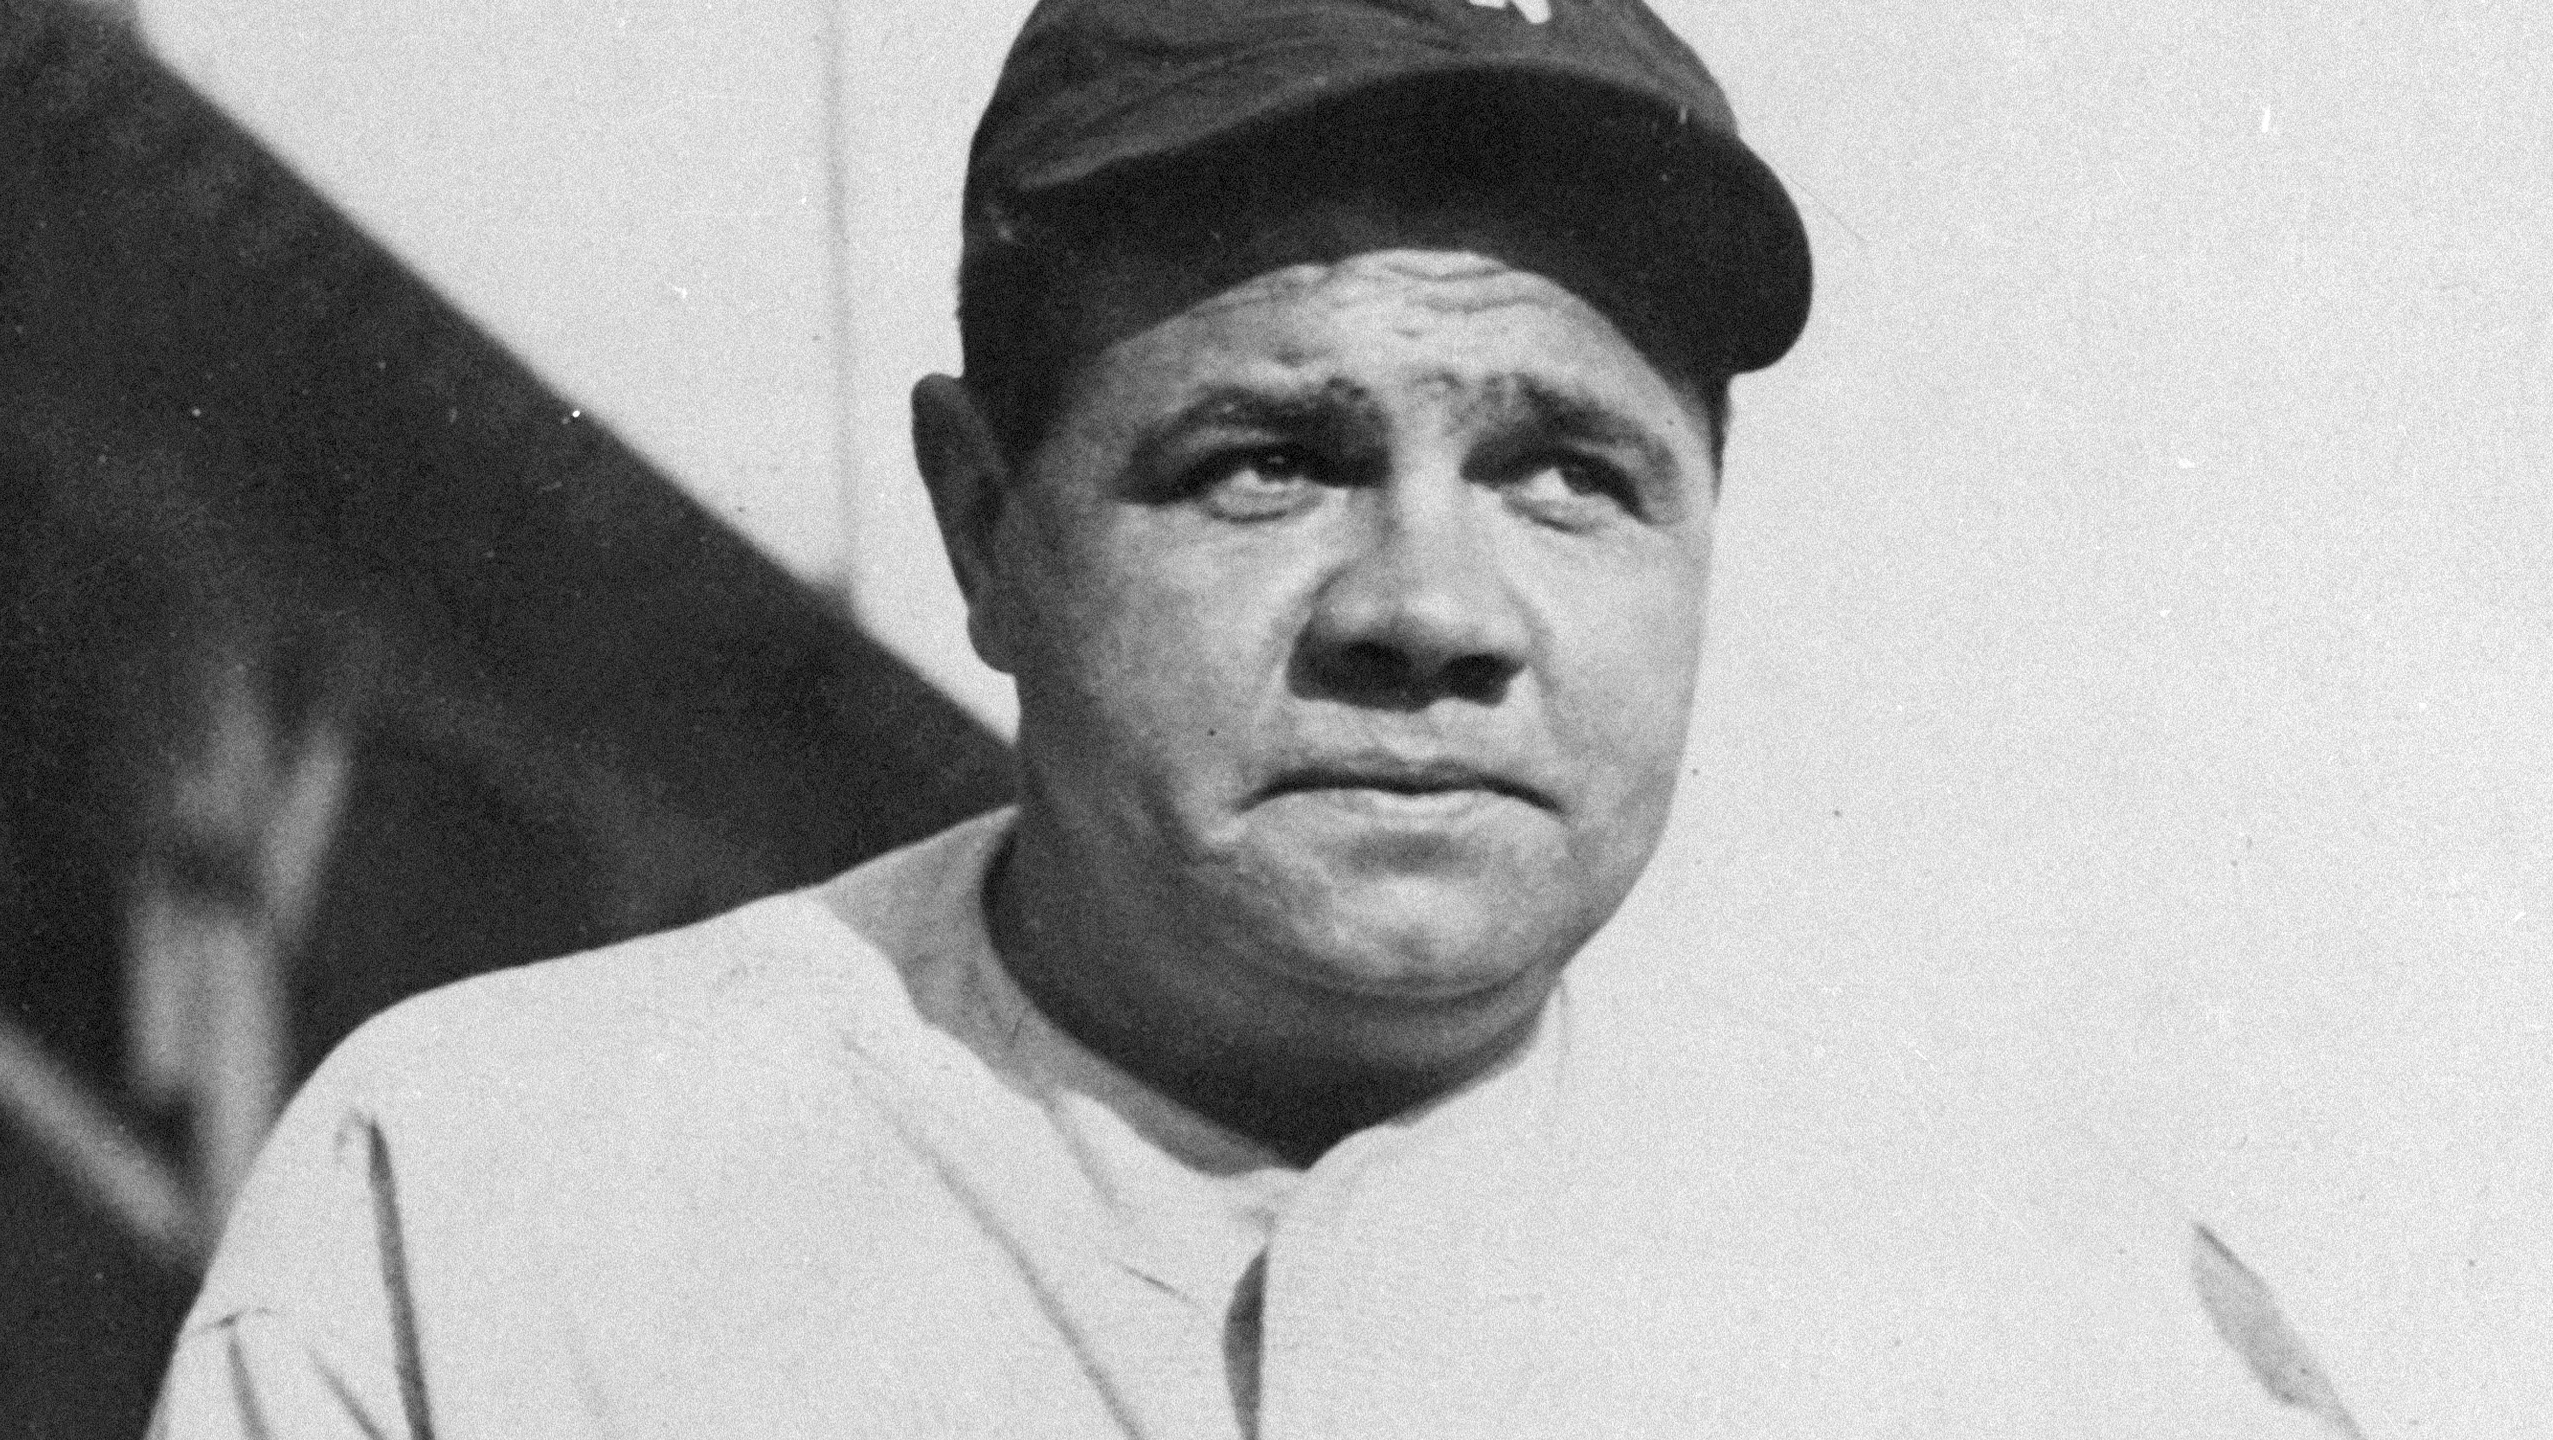 Baseball Babe Ruth 60th HR Bat_1560633511942